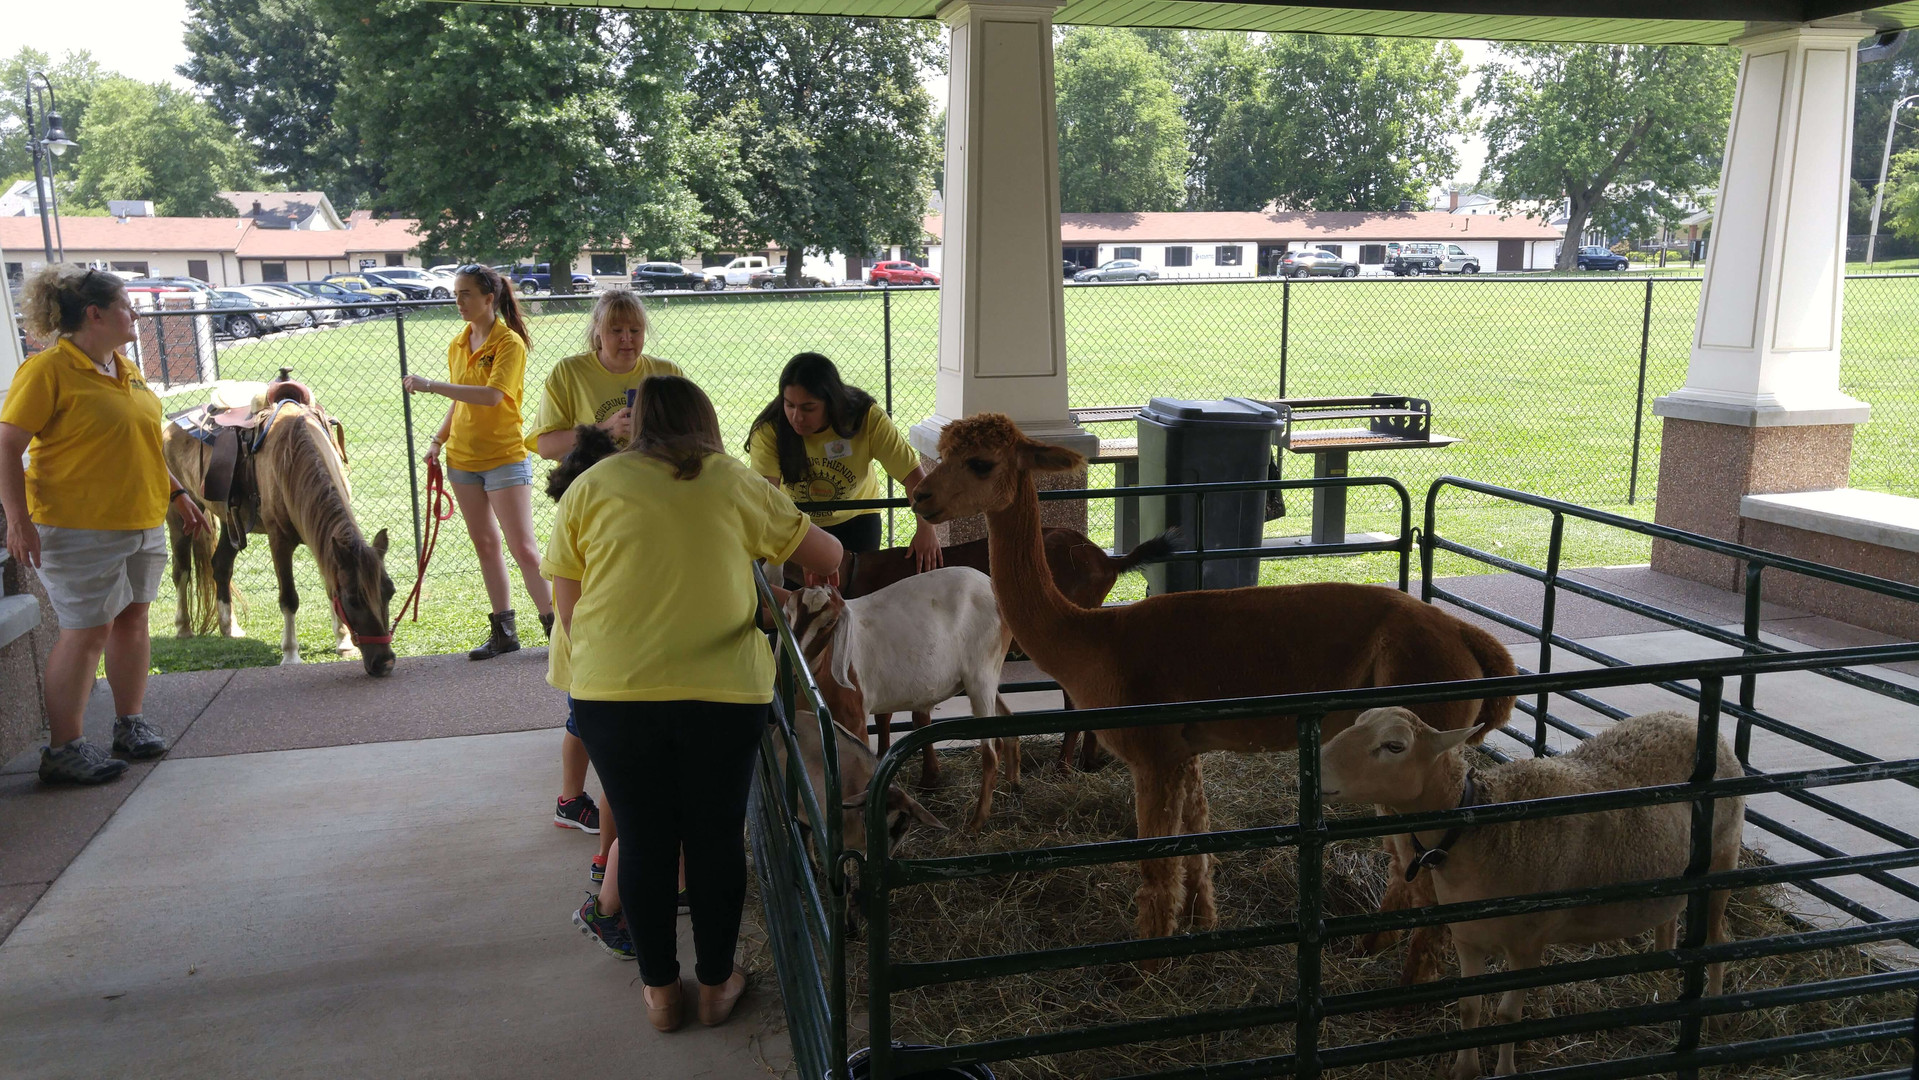 Petting zoo on Farm Day